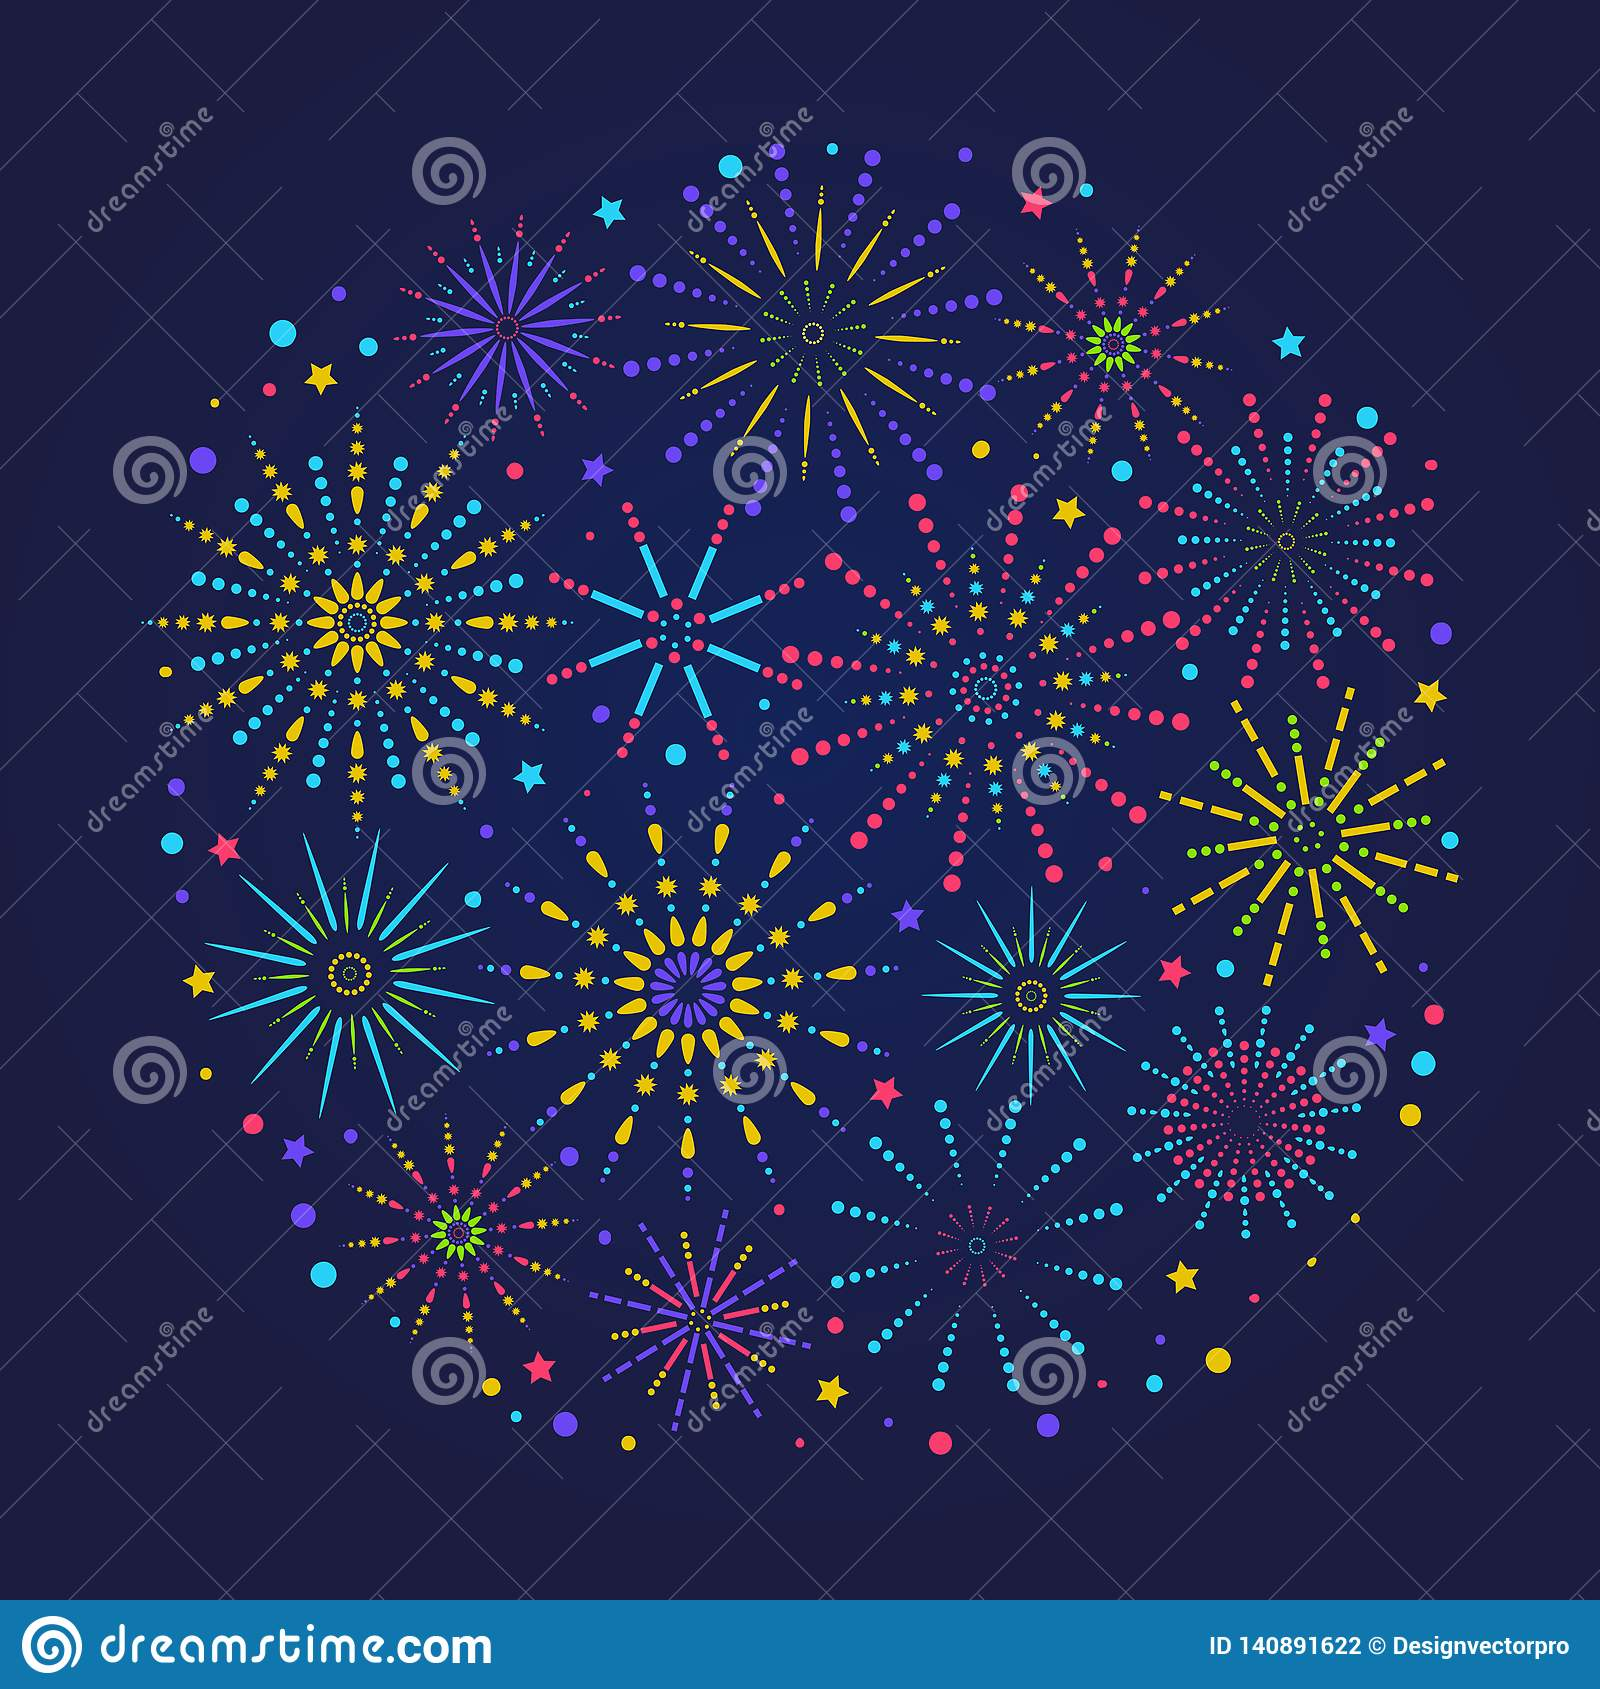 Fireworks composition for festival, holiday or winner poster. Trendy congratulations banner with fireworks in linear style.